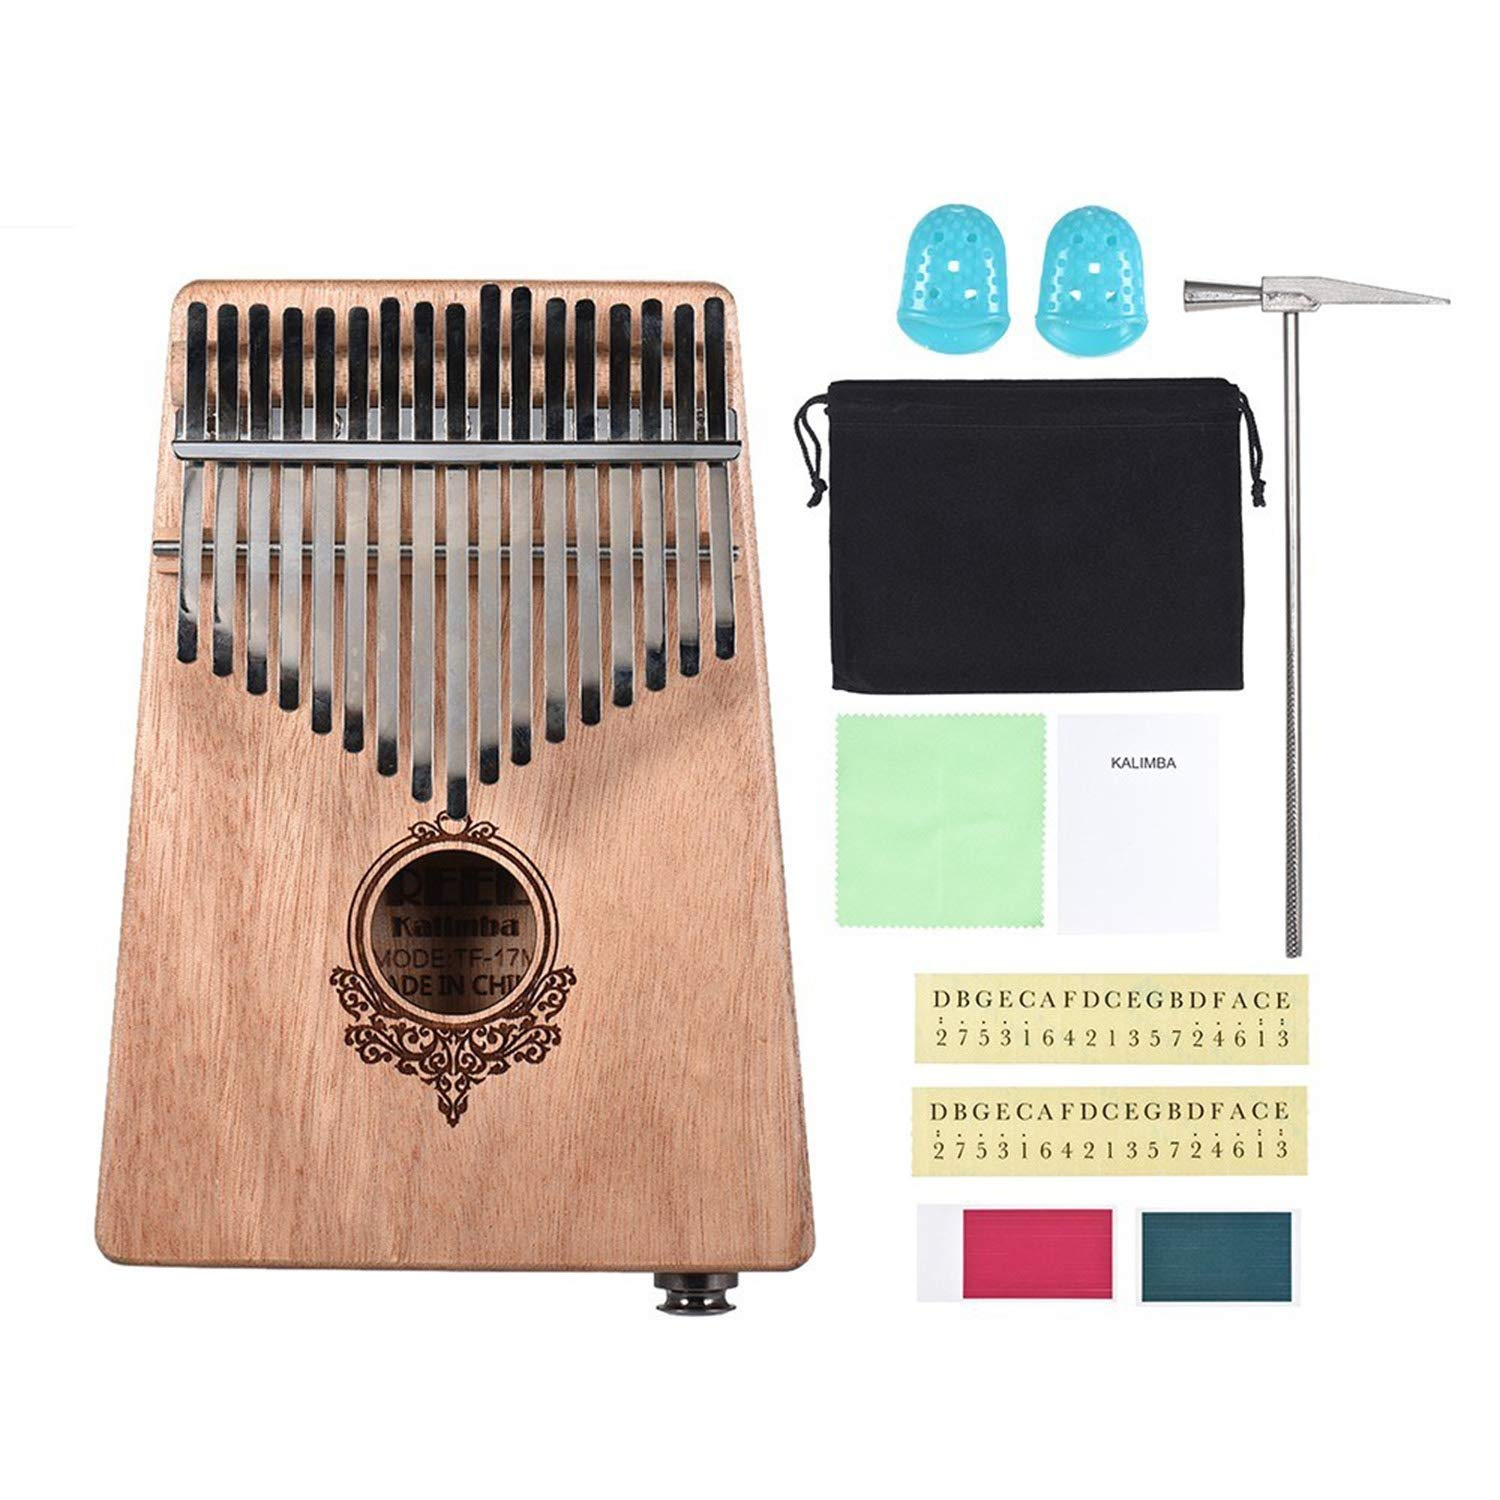 17 Key Kalimba Thumb Piano Pocket Size Finger Piano Wooden Musical Instrument FairytaleMM